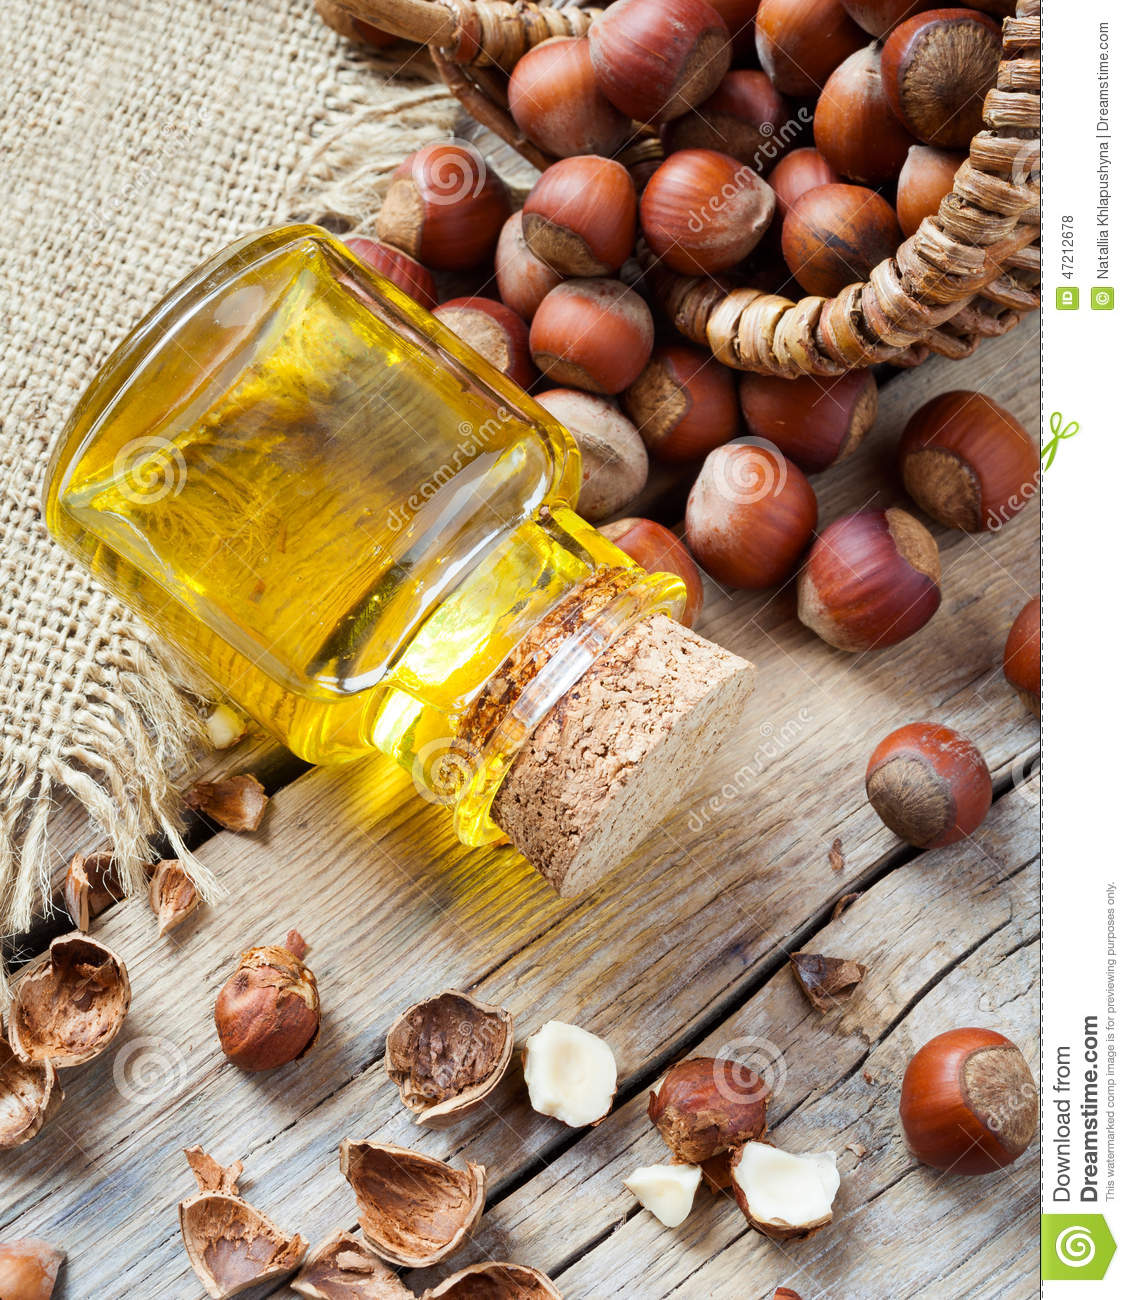 Bottle Of Nut Oil And Basket With Hazelnuts On Old Kitchen